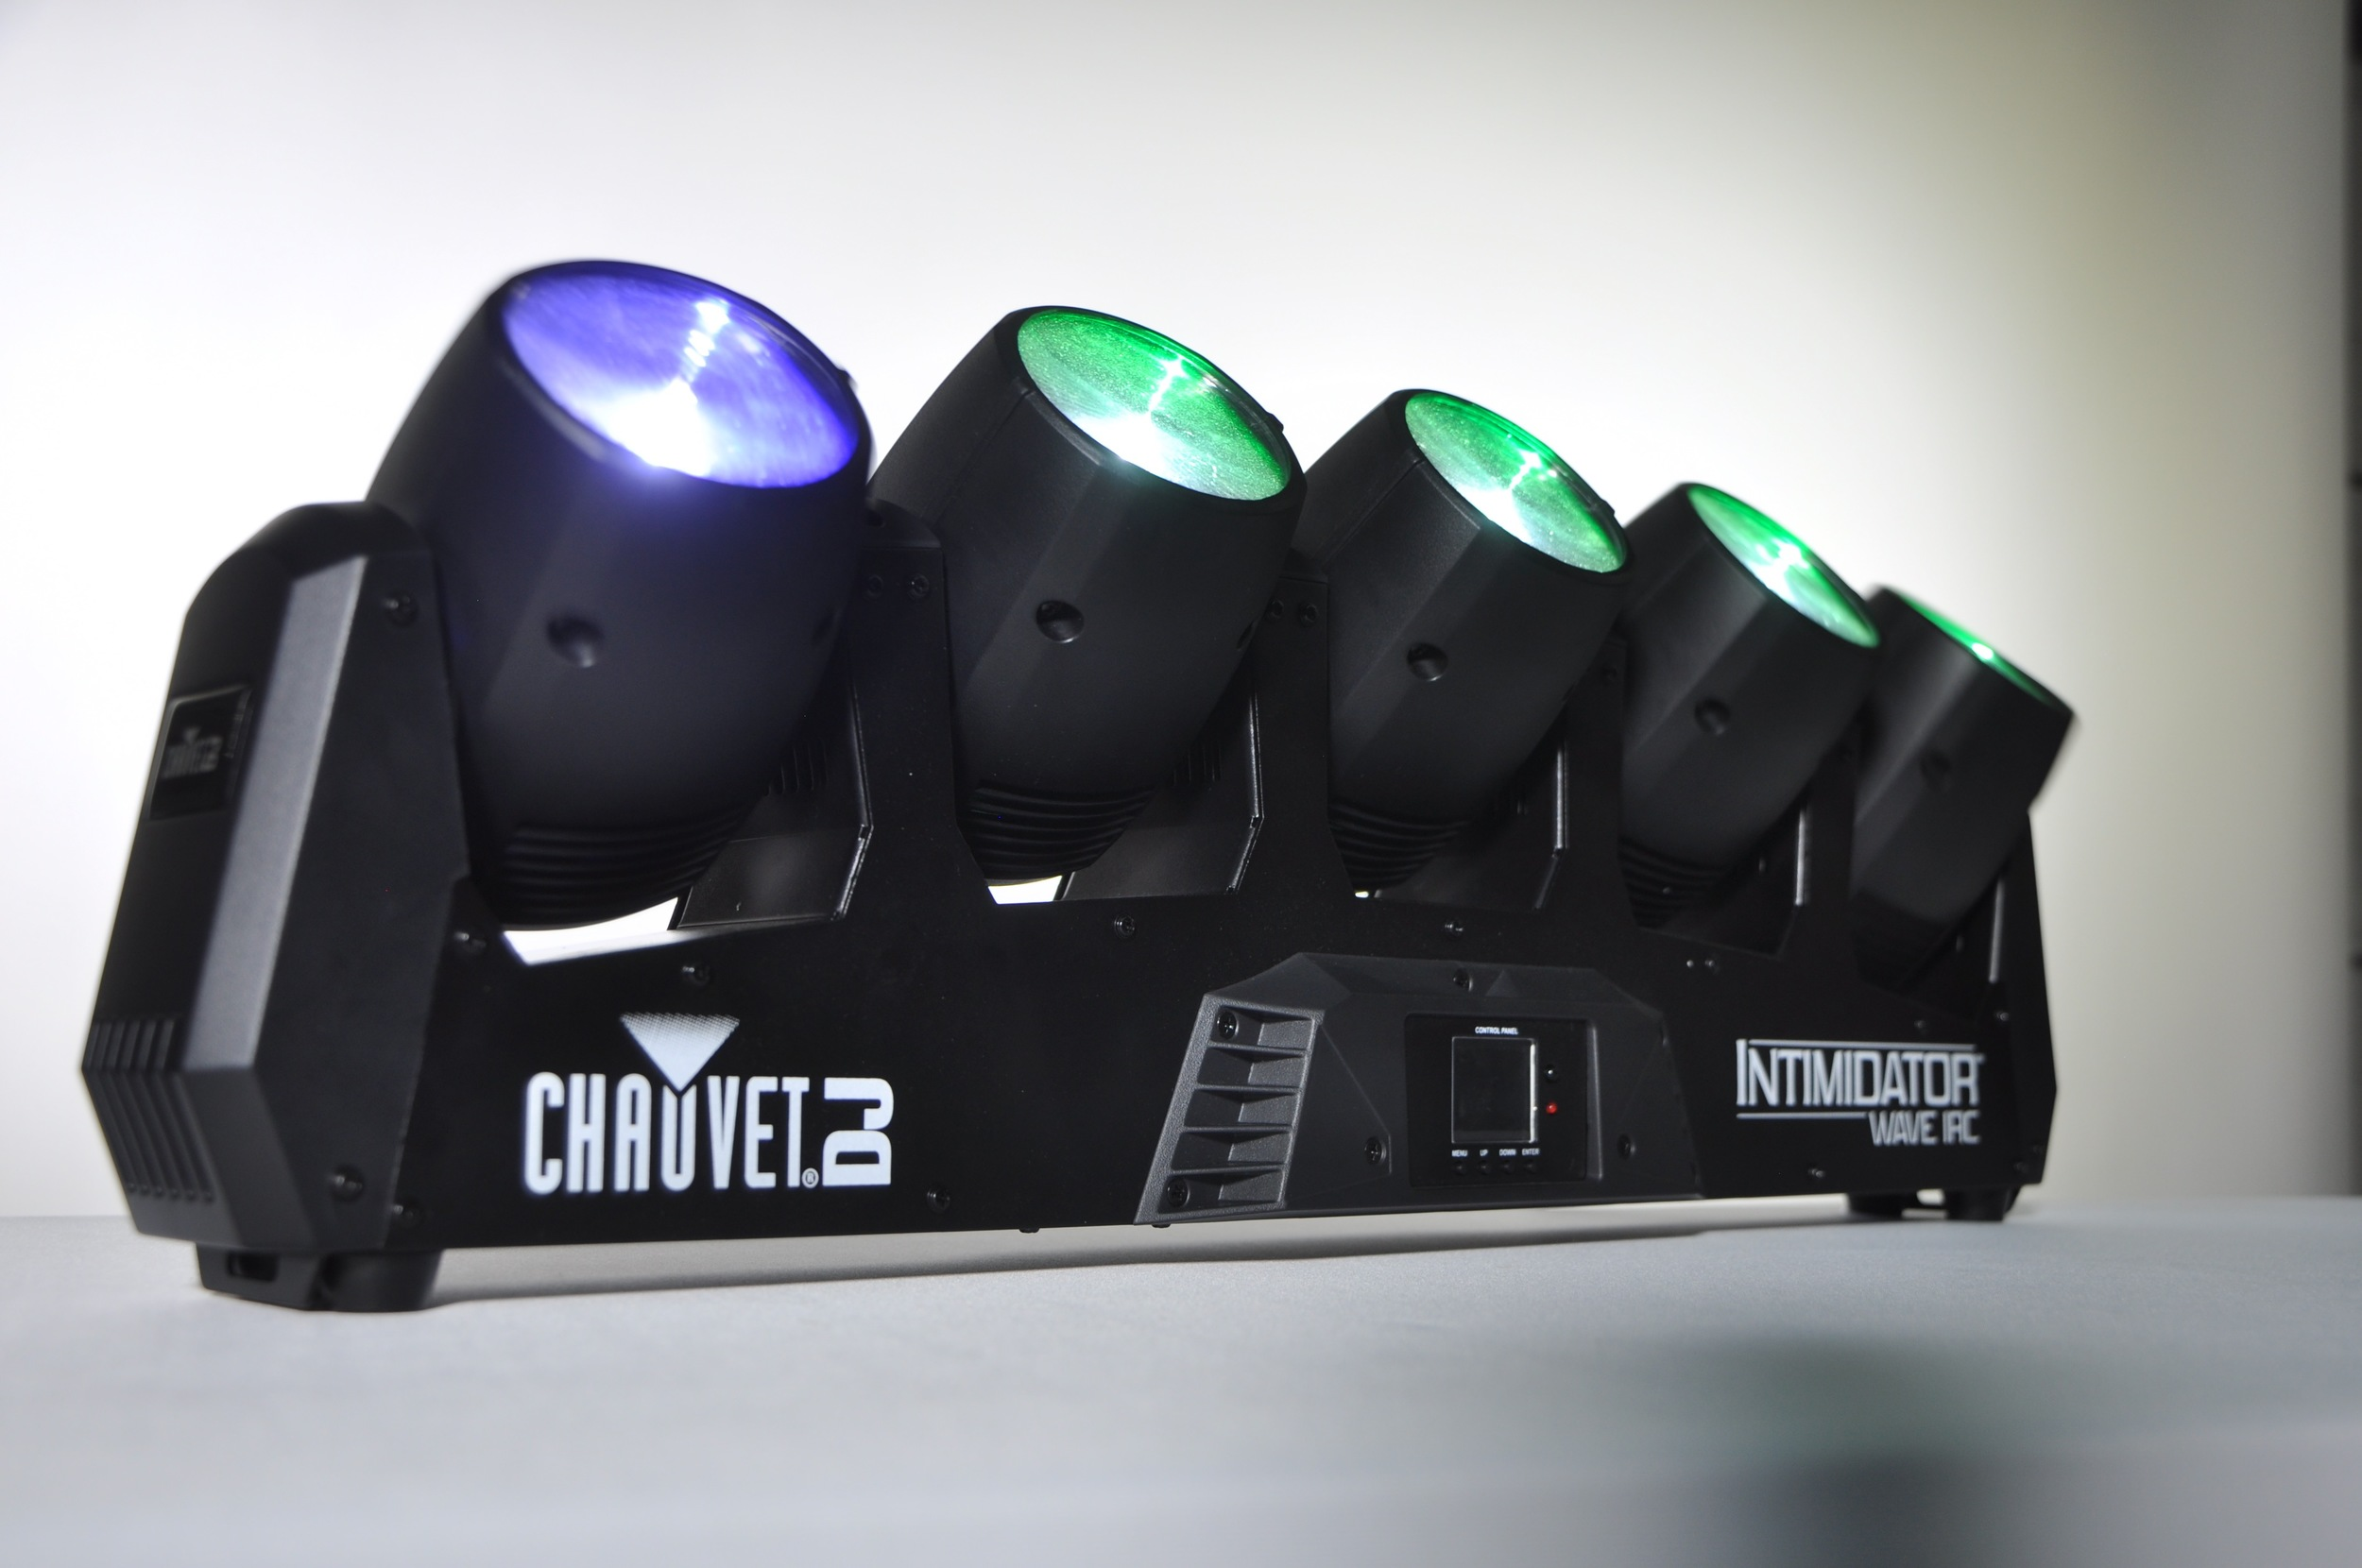 The Intimidator Wave IRC from Chauvet DJ